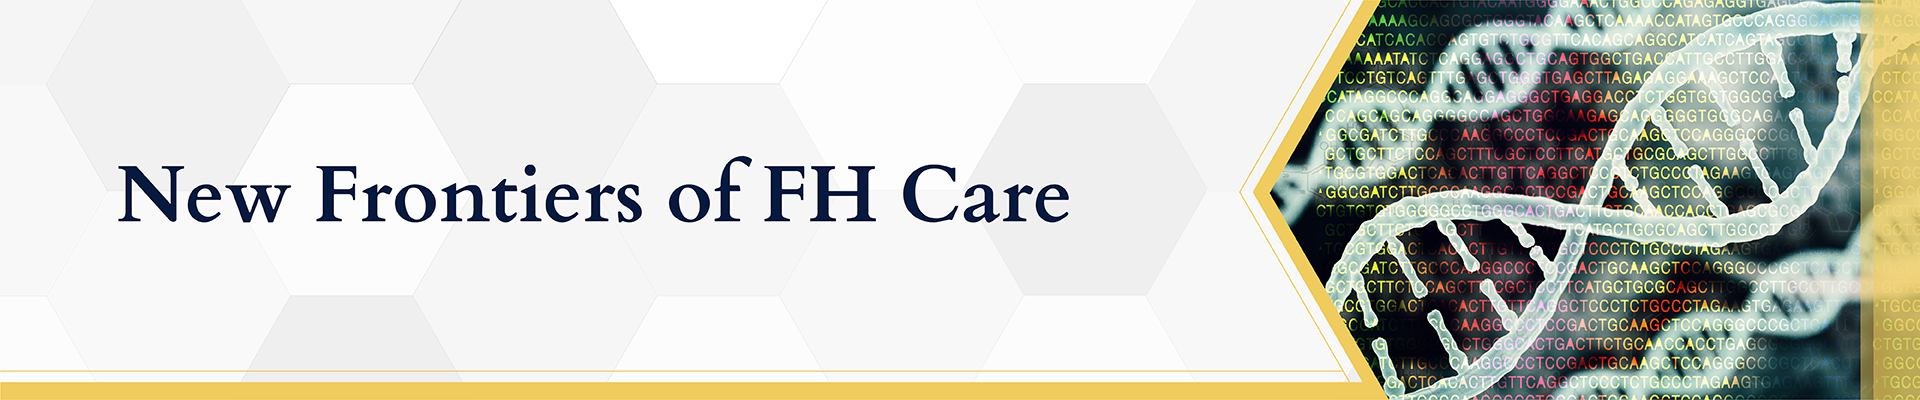 Session 5 - New Frontiers of FH Care